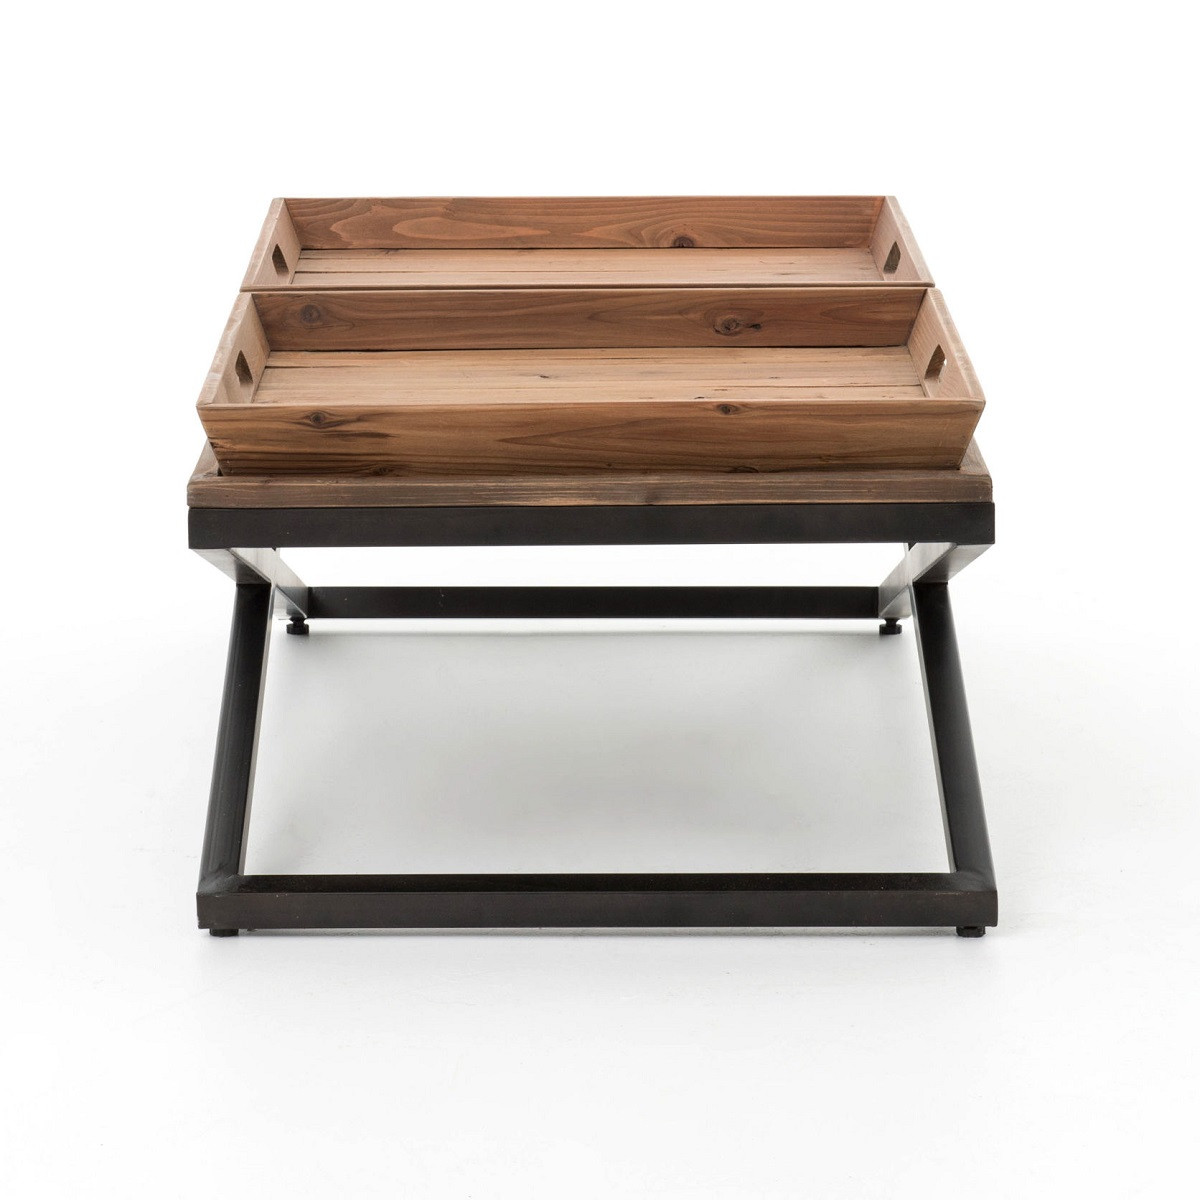 Suffolk Simplicity Reclaimed Wood Square Industrial Coffee: Jax X-Base Industrial Rectangular Coffee Table With Tray